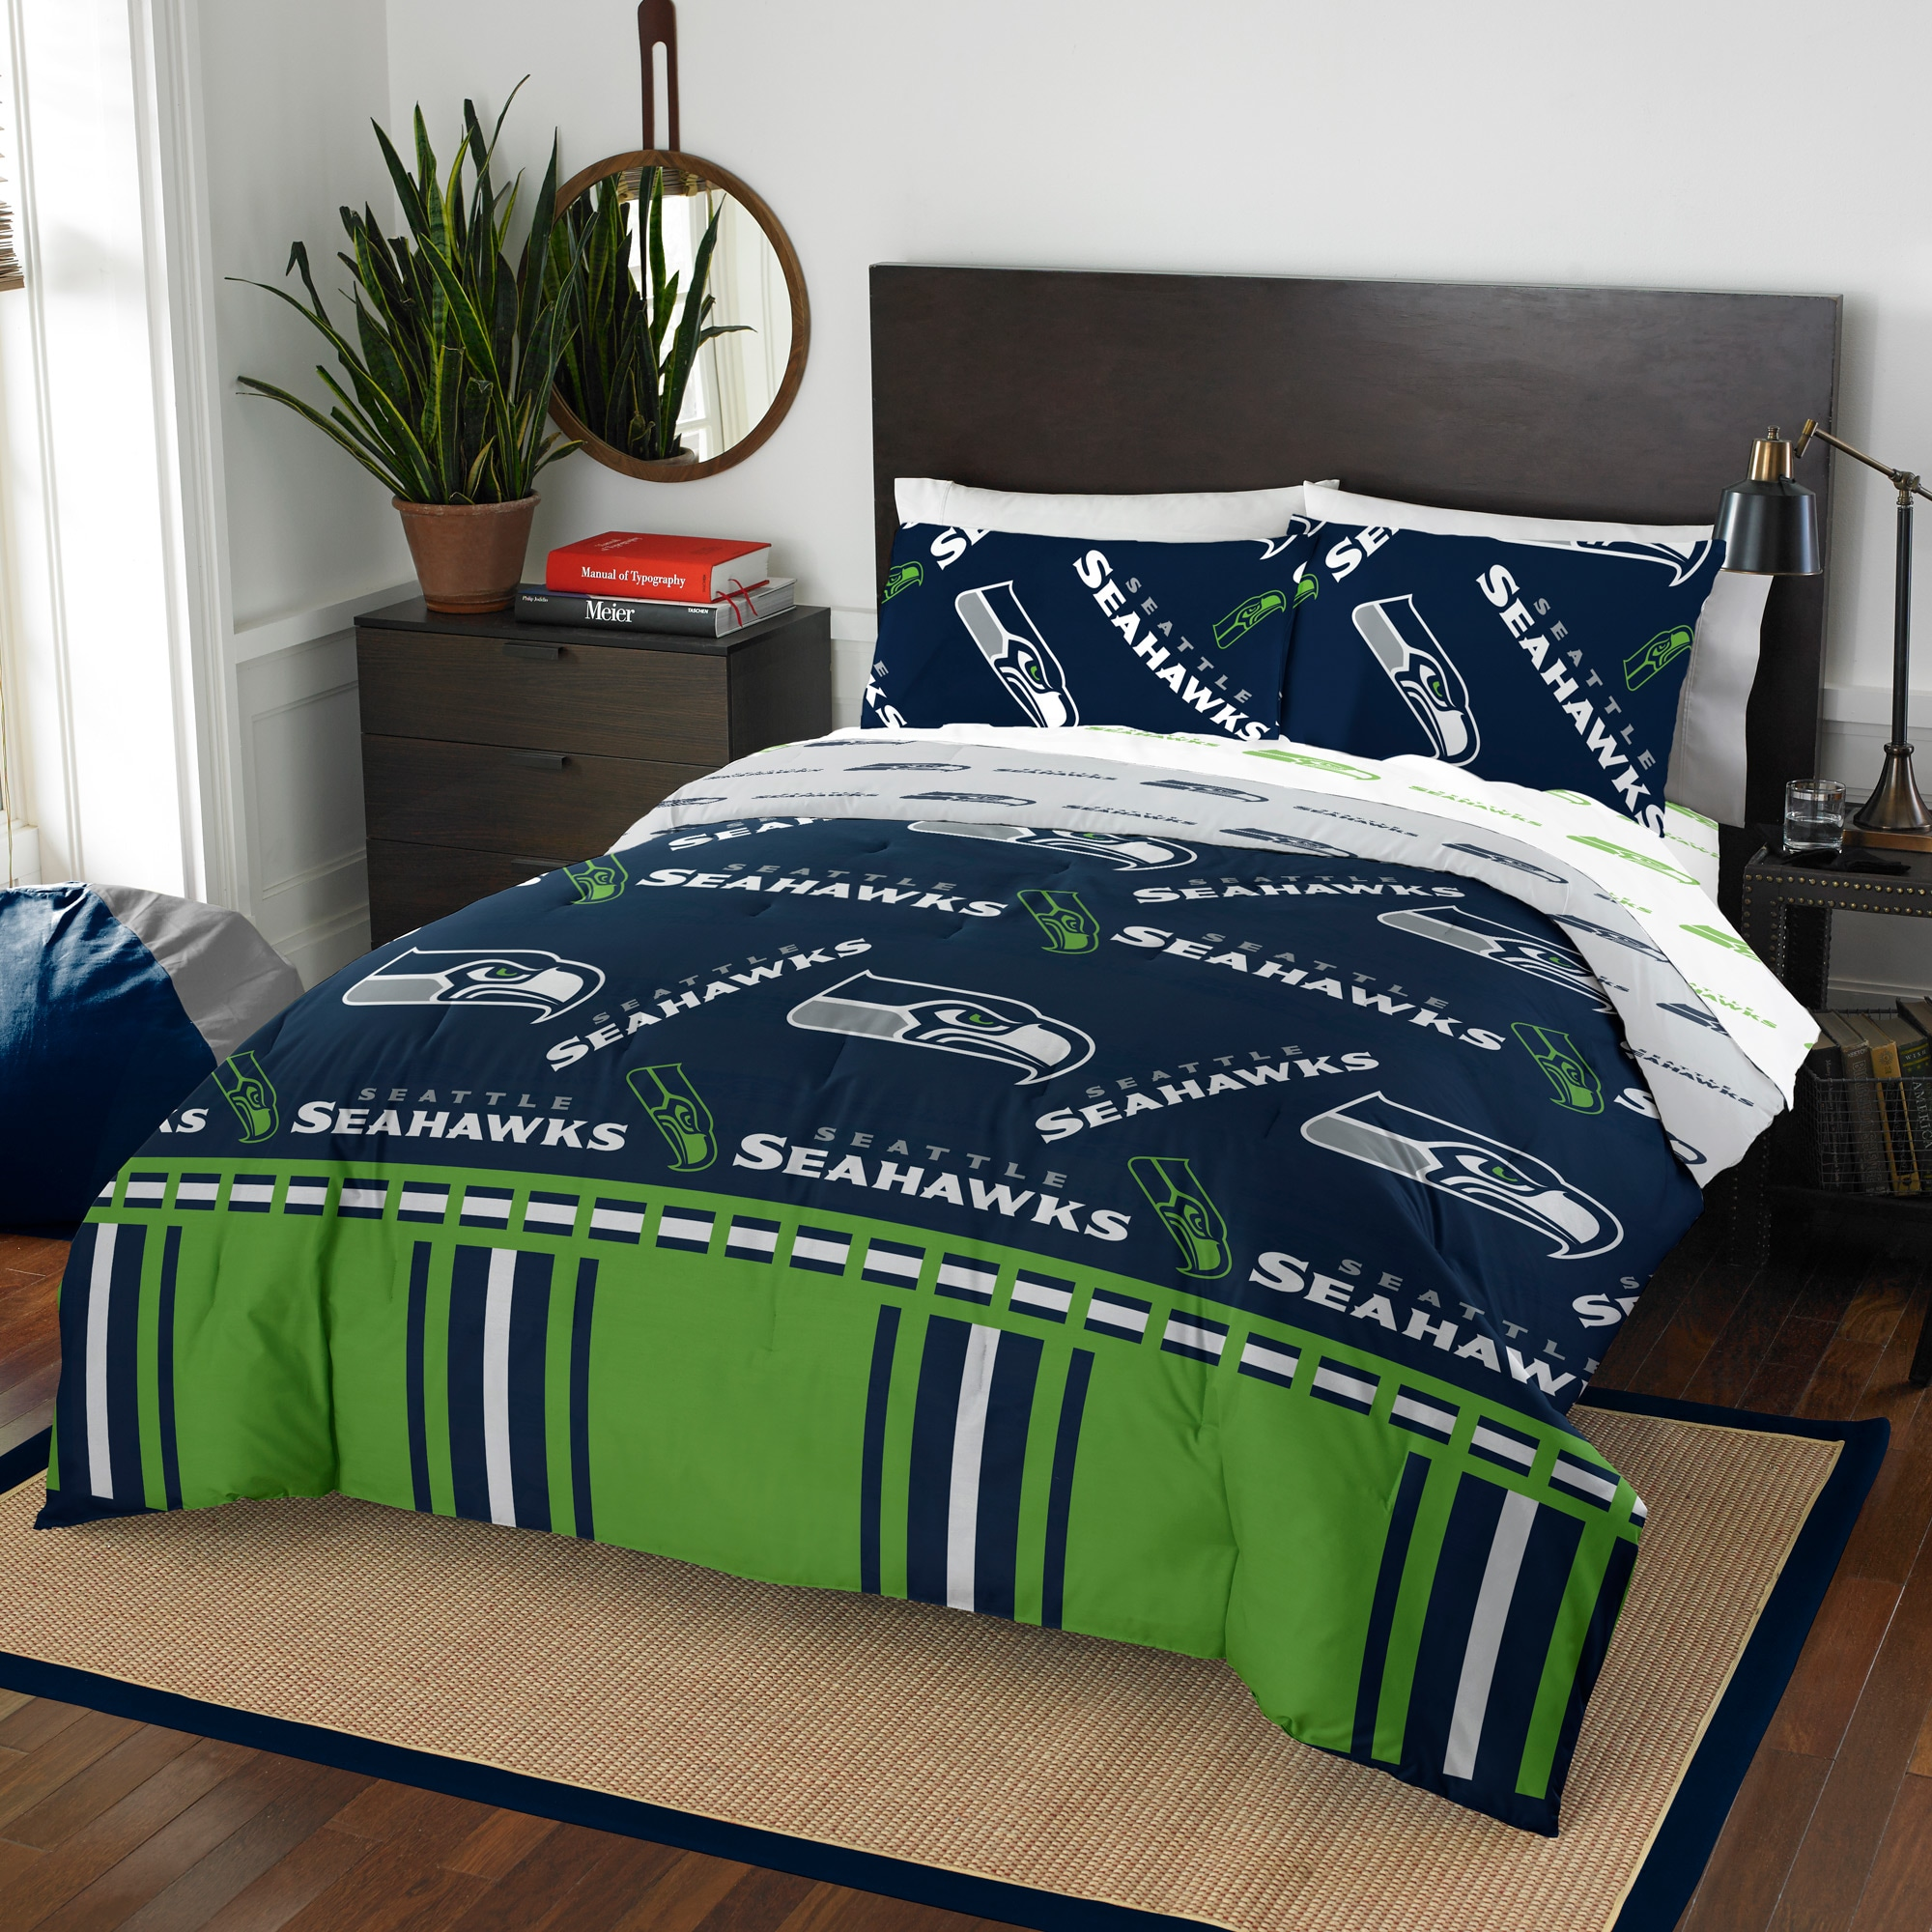 Seattle Seahawks The Northwest Company 5-Piece Queen Bed in a Bag Set